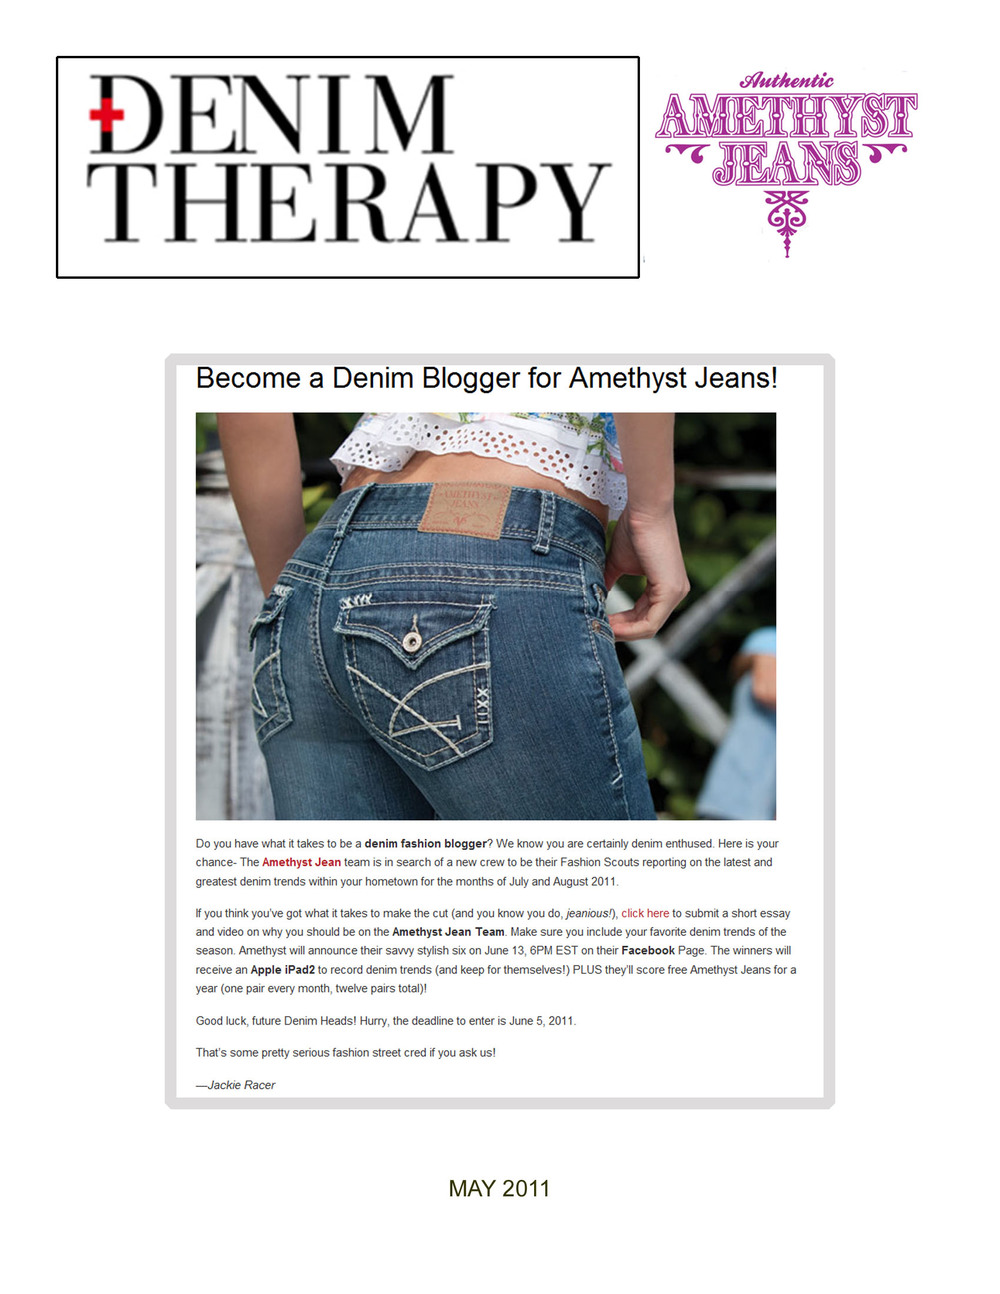 DenimTherapy_May2011.jpg